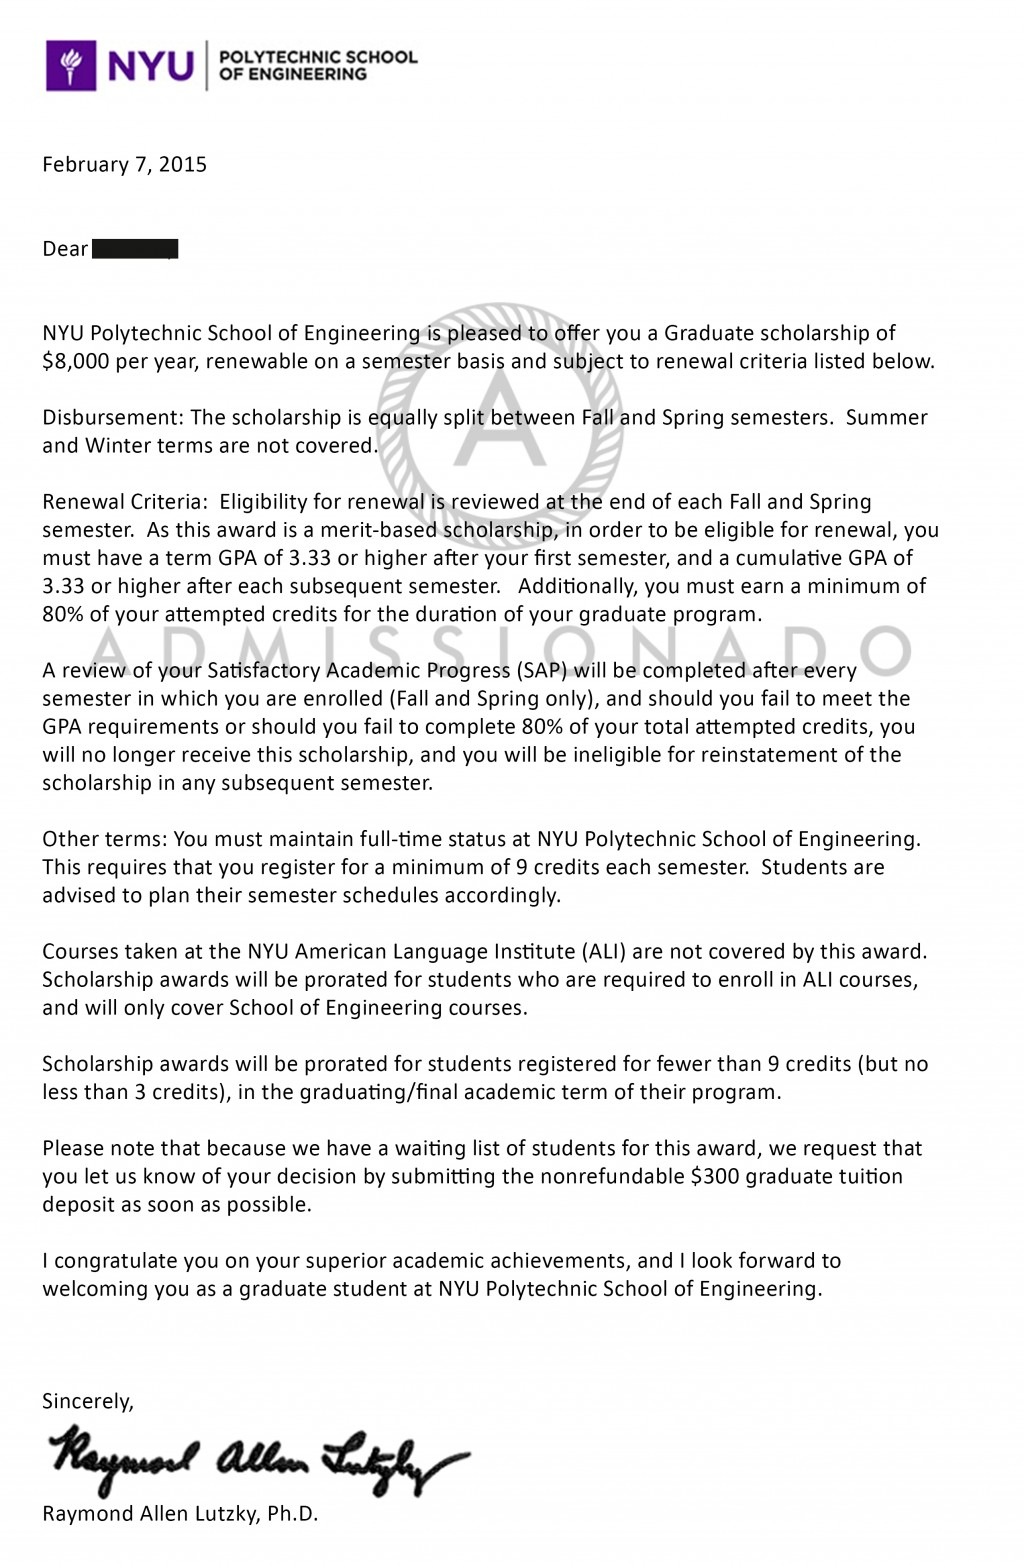 008 Nyu Supplement Essay Xz Acceptance Wm Outstanding Examples College Confidential Essays That Worked Large